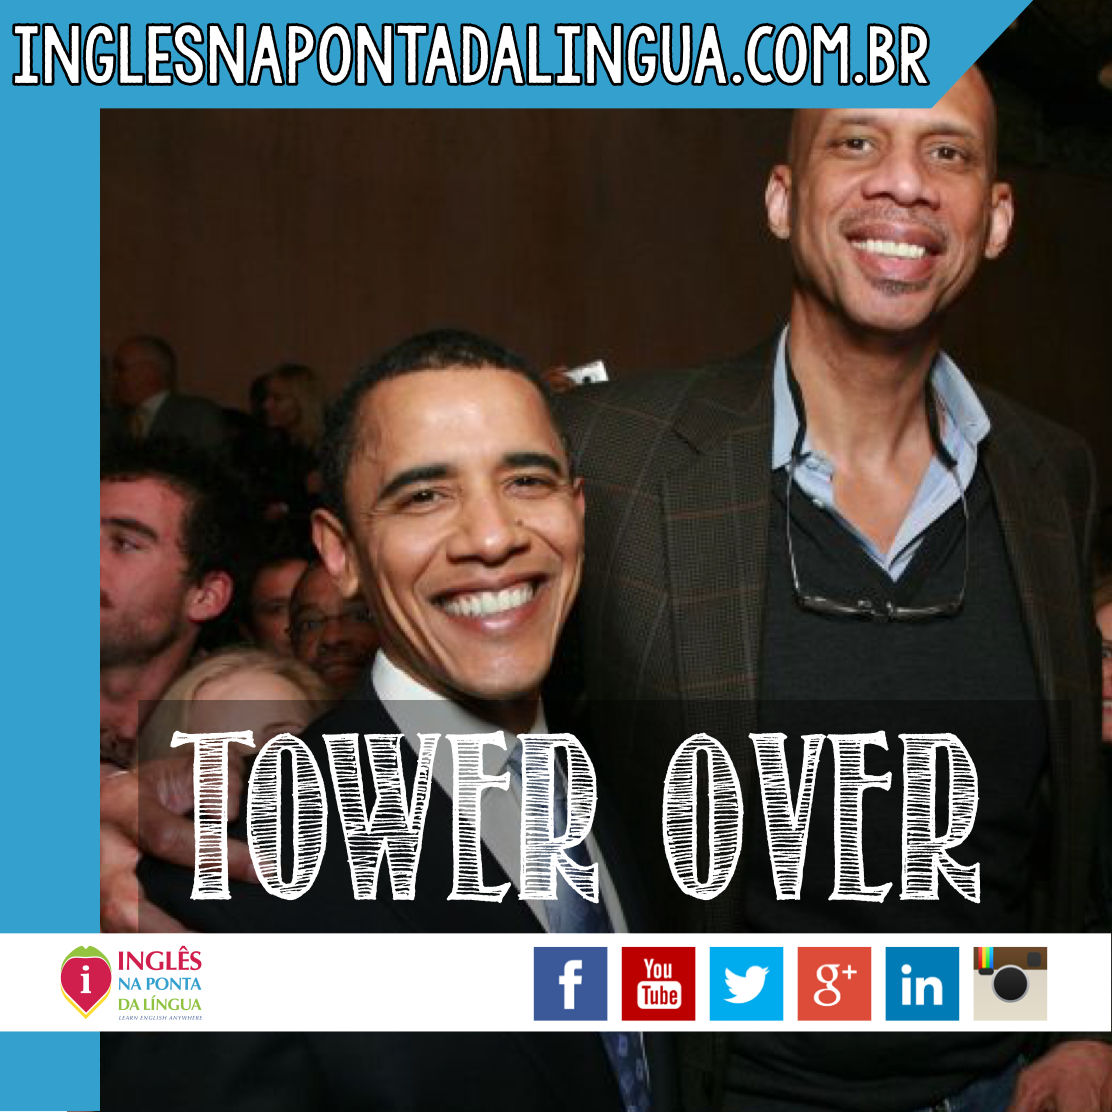 O que significa TOWER OVER?